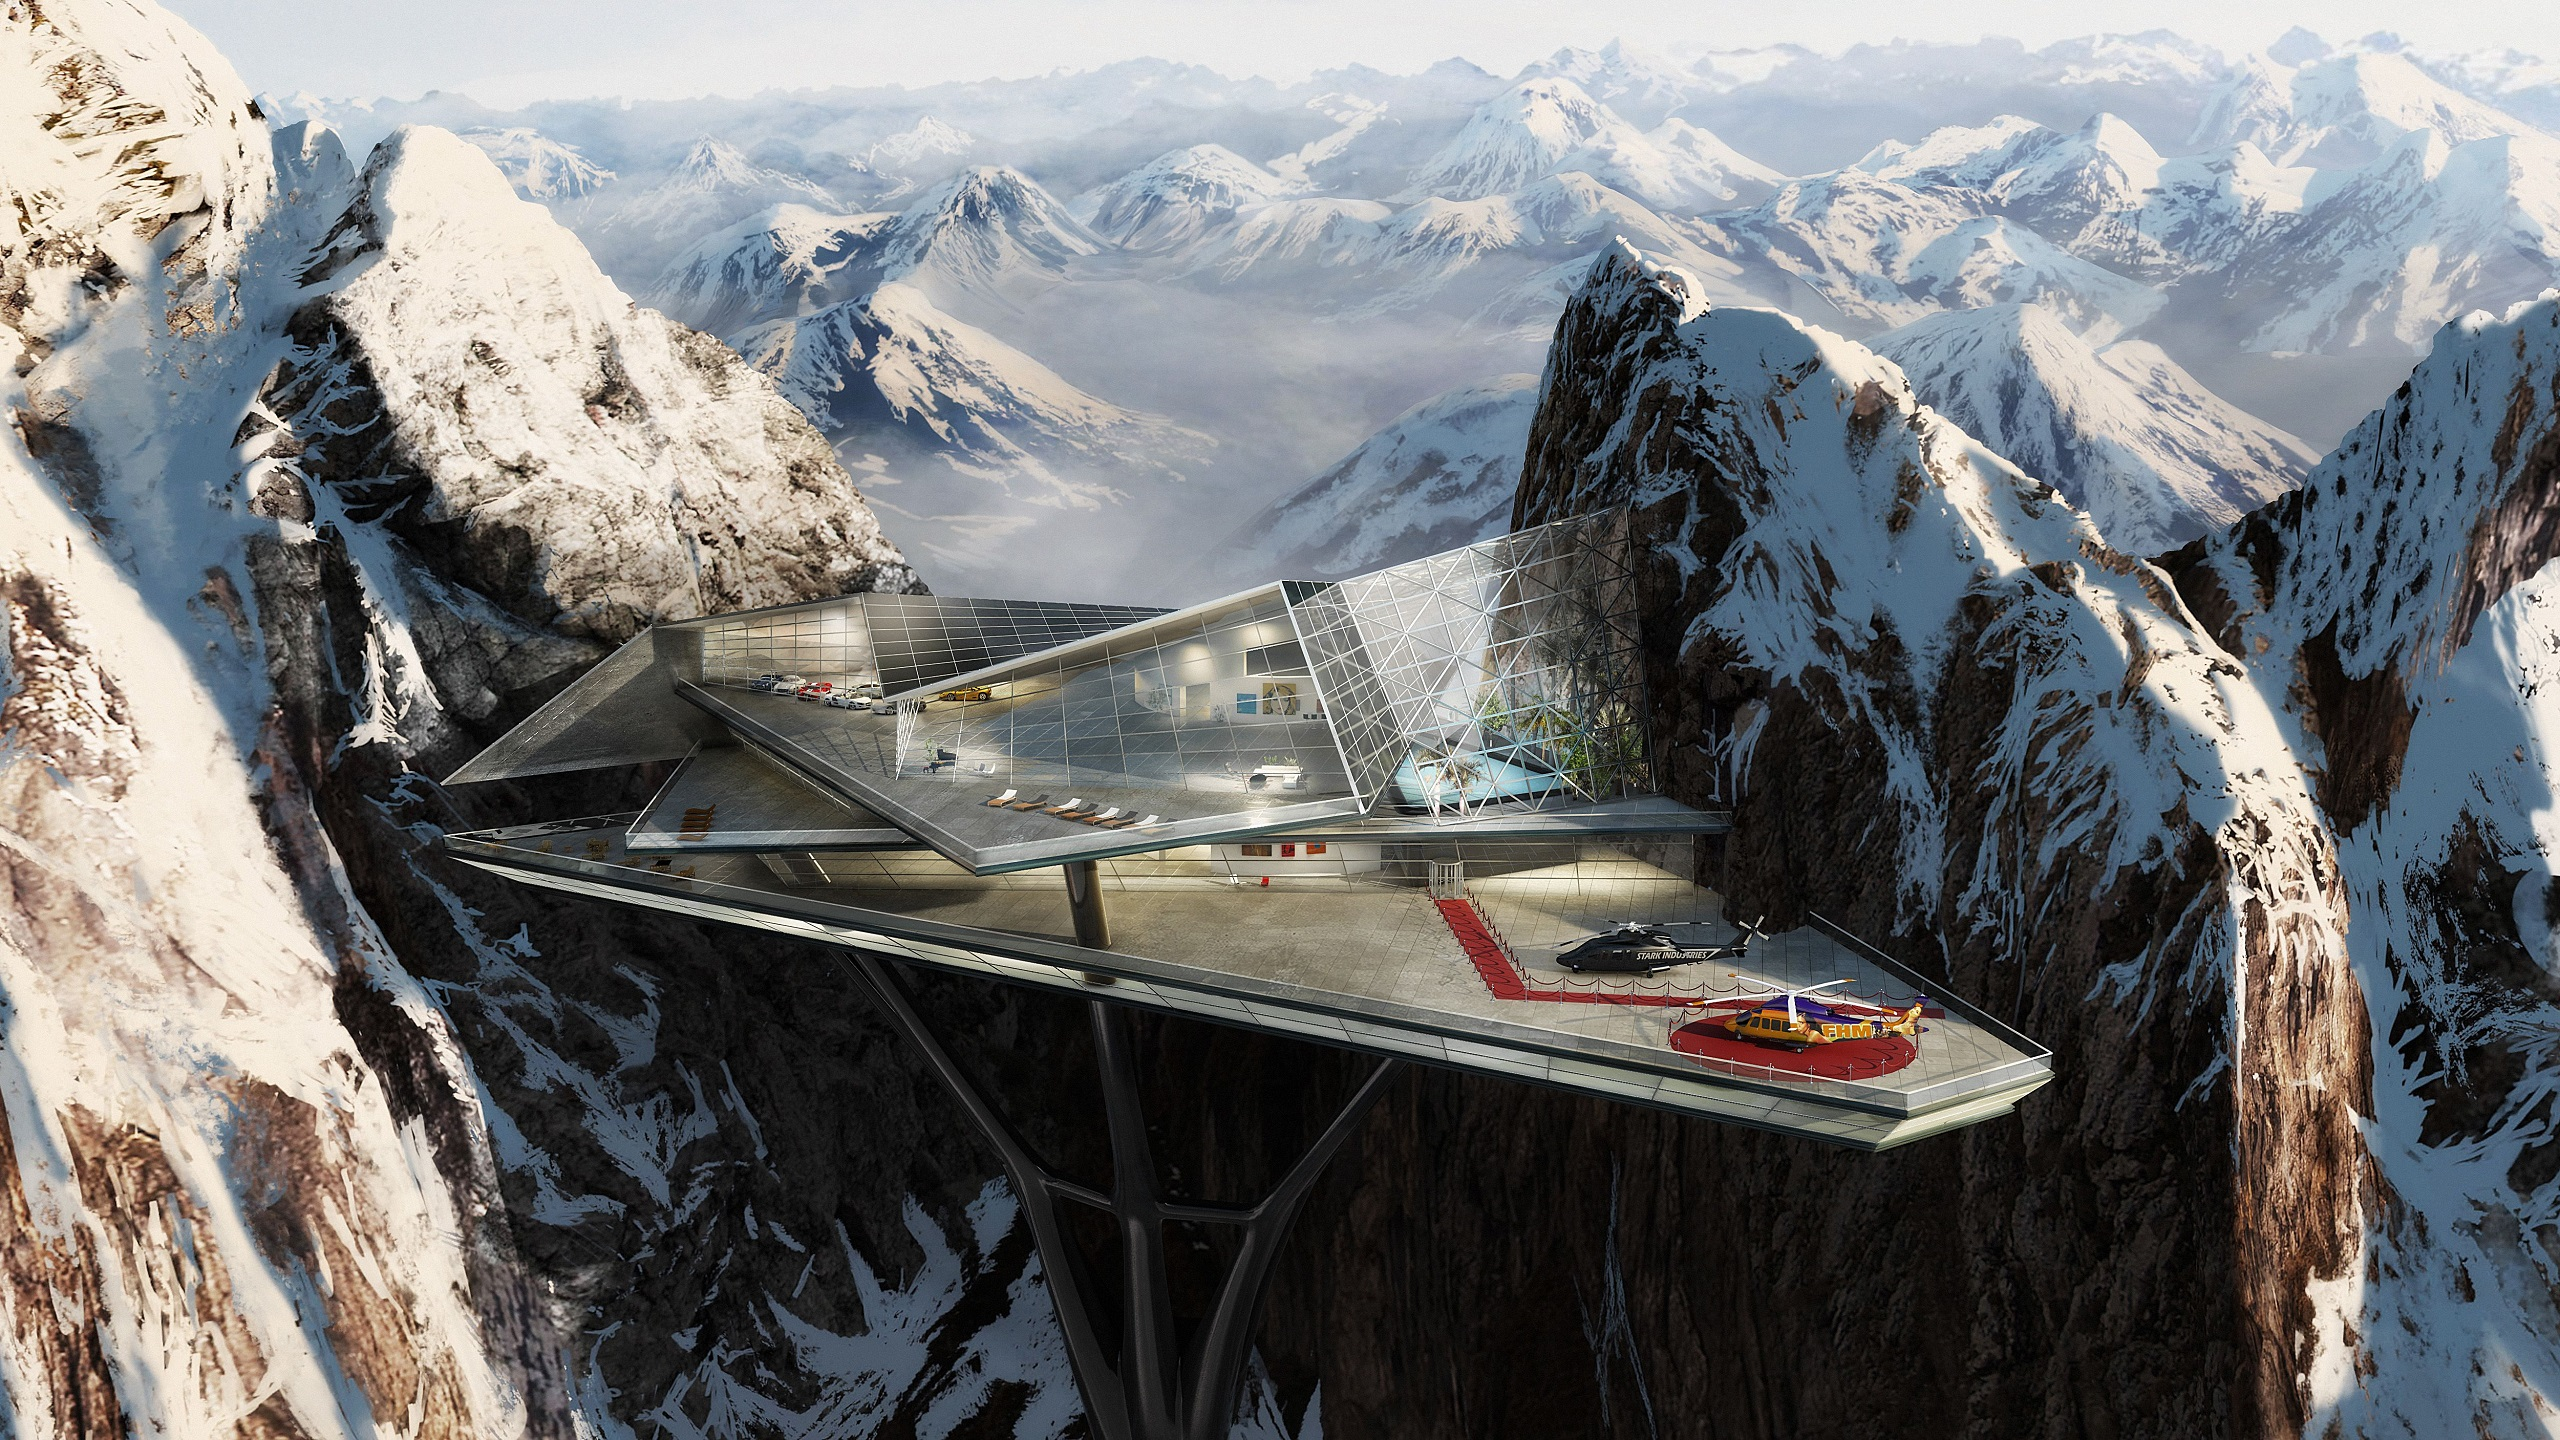 General 2560x1440 snow architecture helicopter mountains futuristic snowy mountain digital art Stark Industries